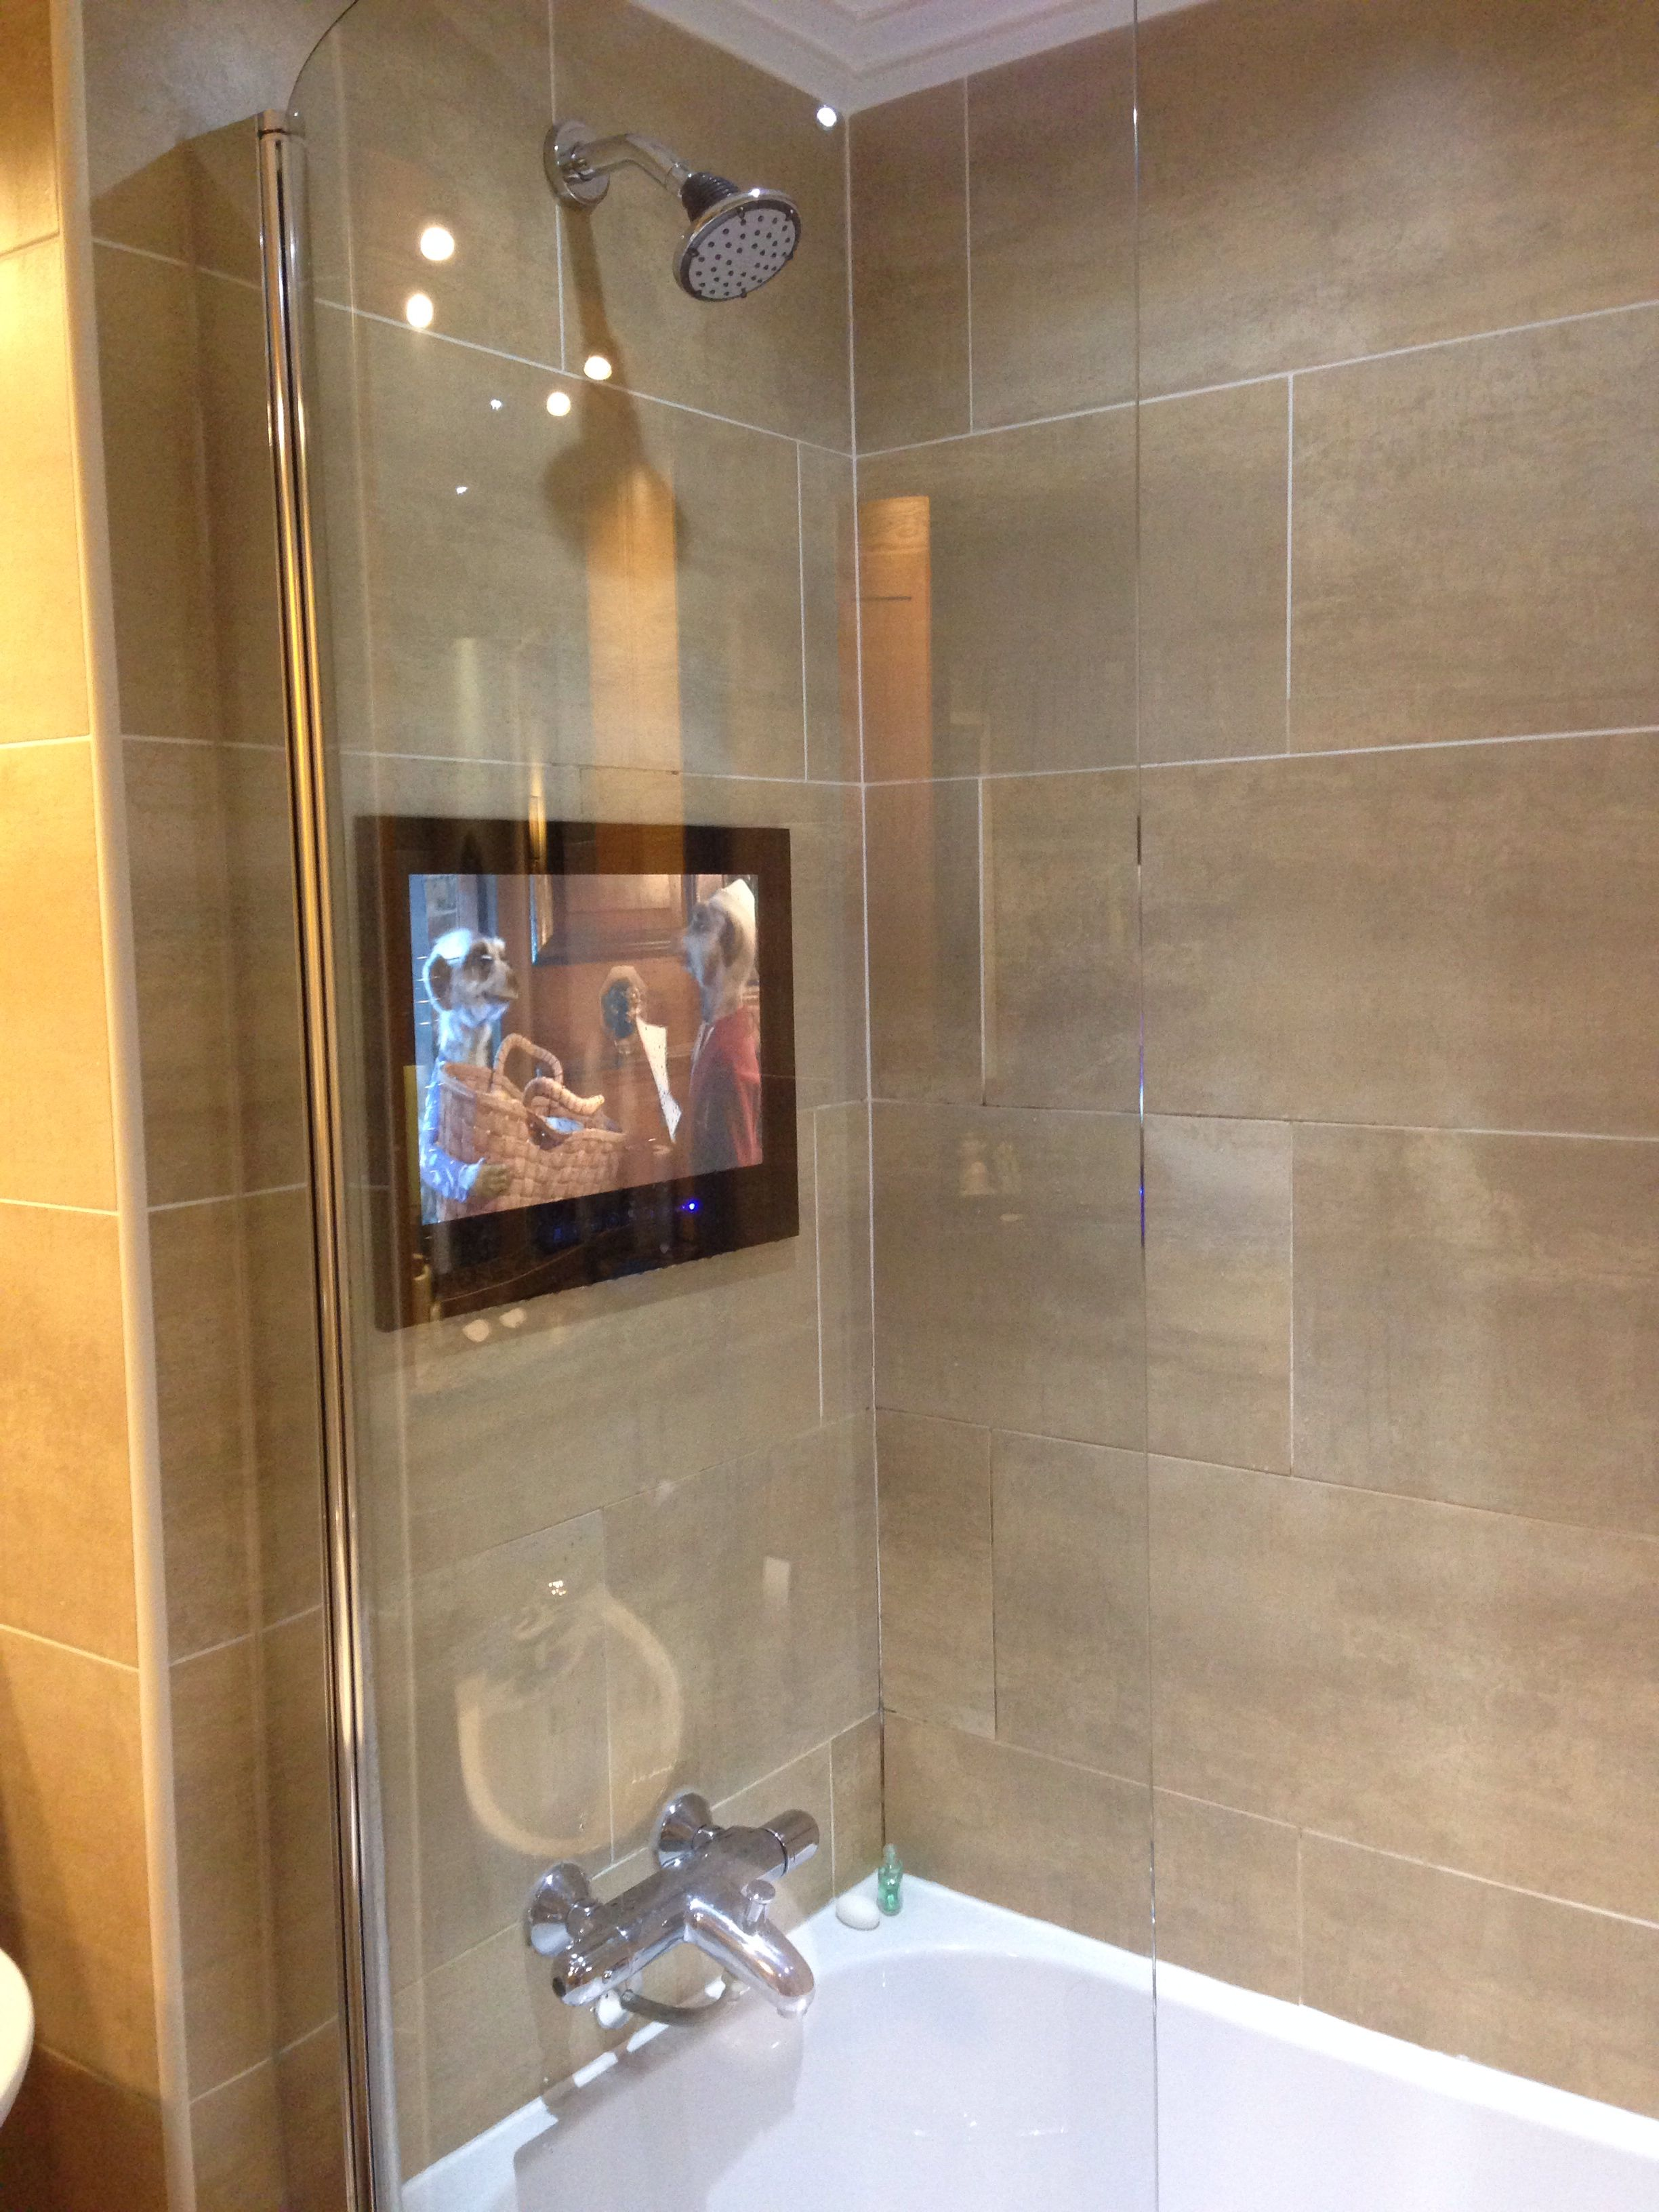 My Fiance Wants A Tv In The Shower For What I Have No Idea Lol Bathroom Mirror Design Bathroom Remodel Designs Spa Inspired Bathroom